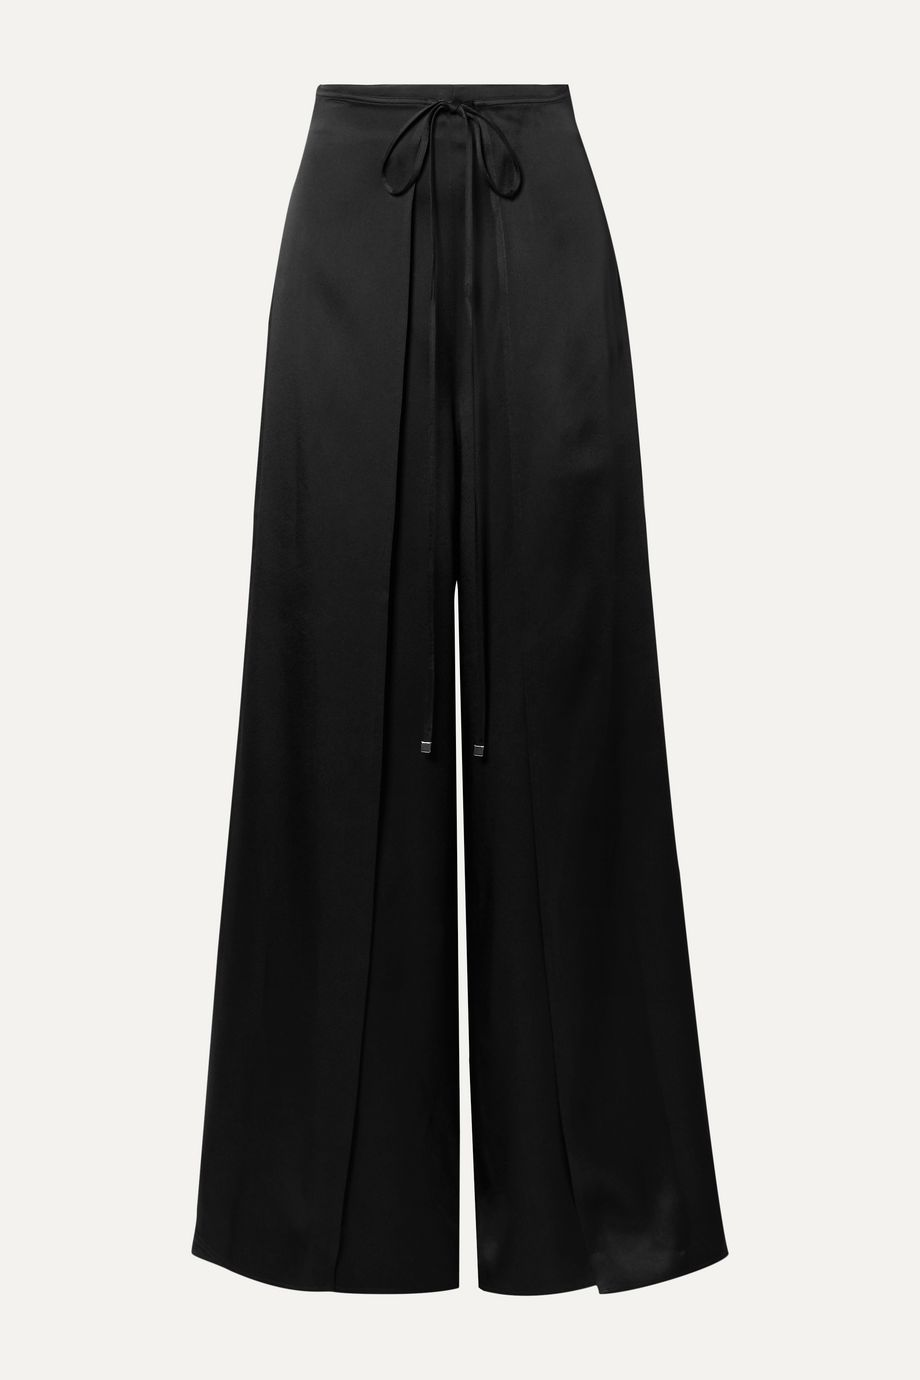 Rosetta Getty Tie-front layered satin wide-leg pants